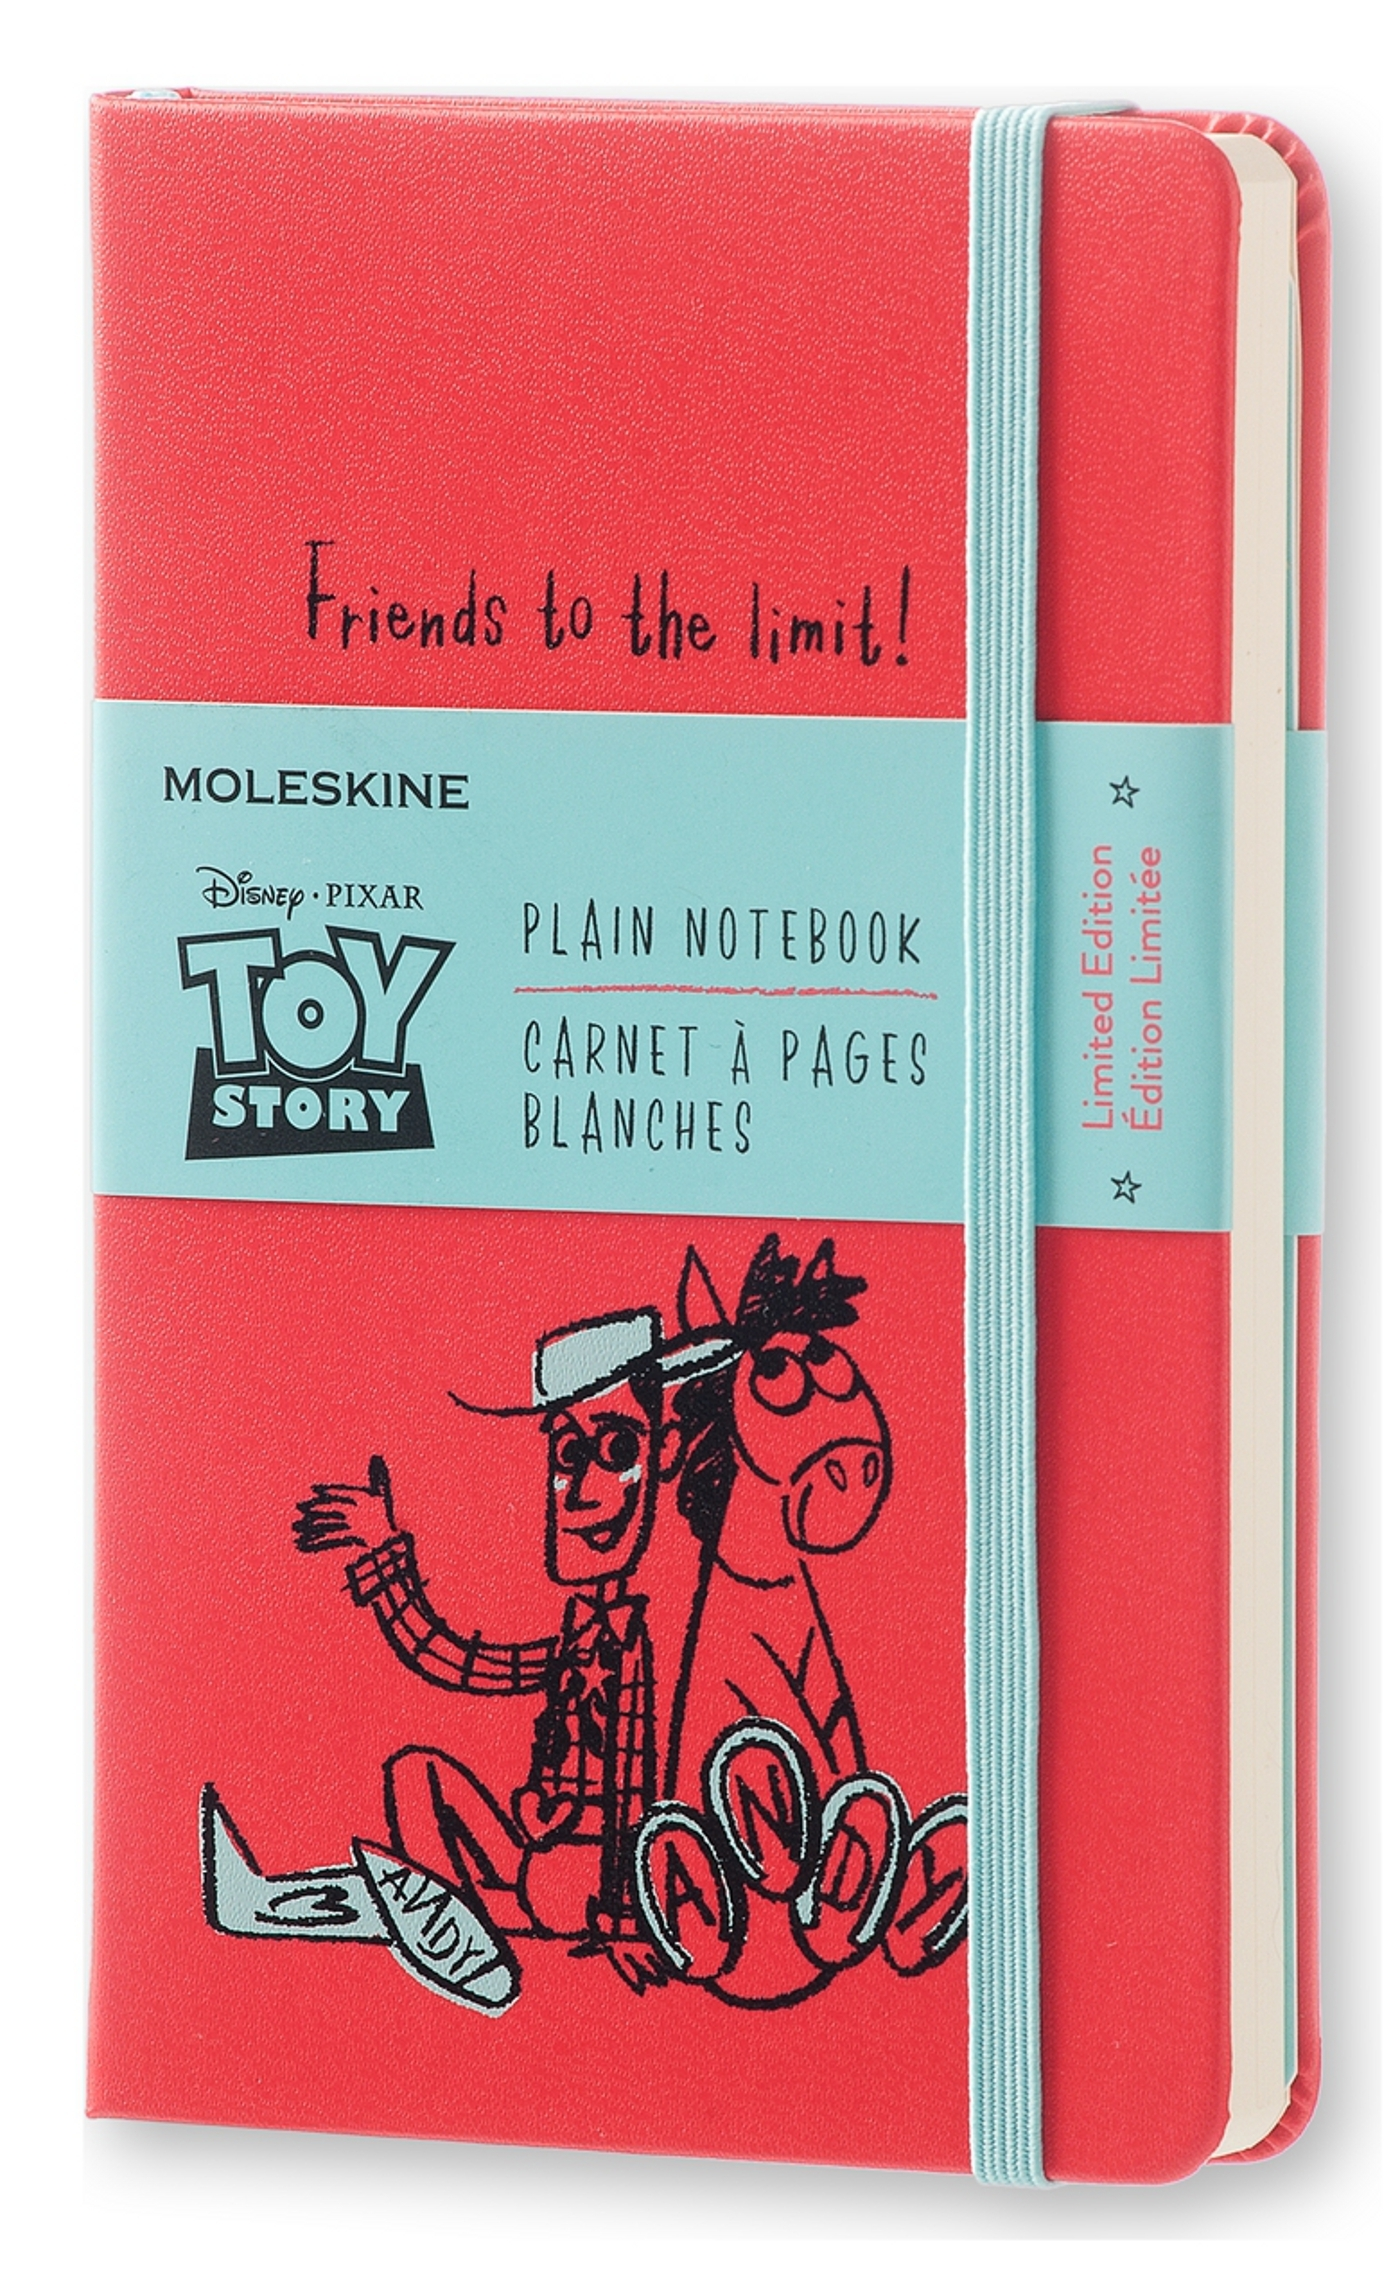 CARNET EDITON LIMITEE TOY STORY - FORMAT DE POCHE - PAGES BLANCHES